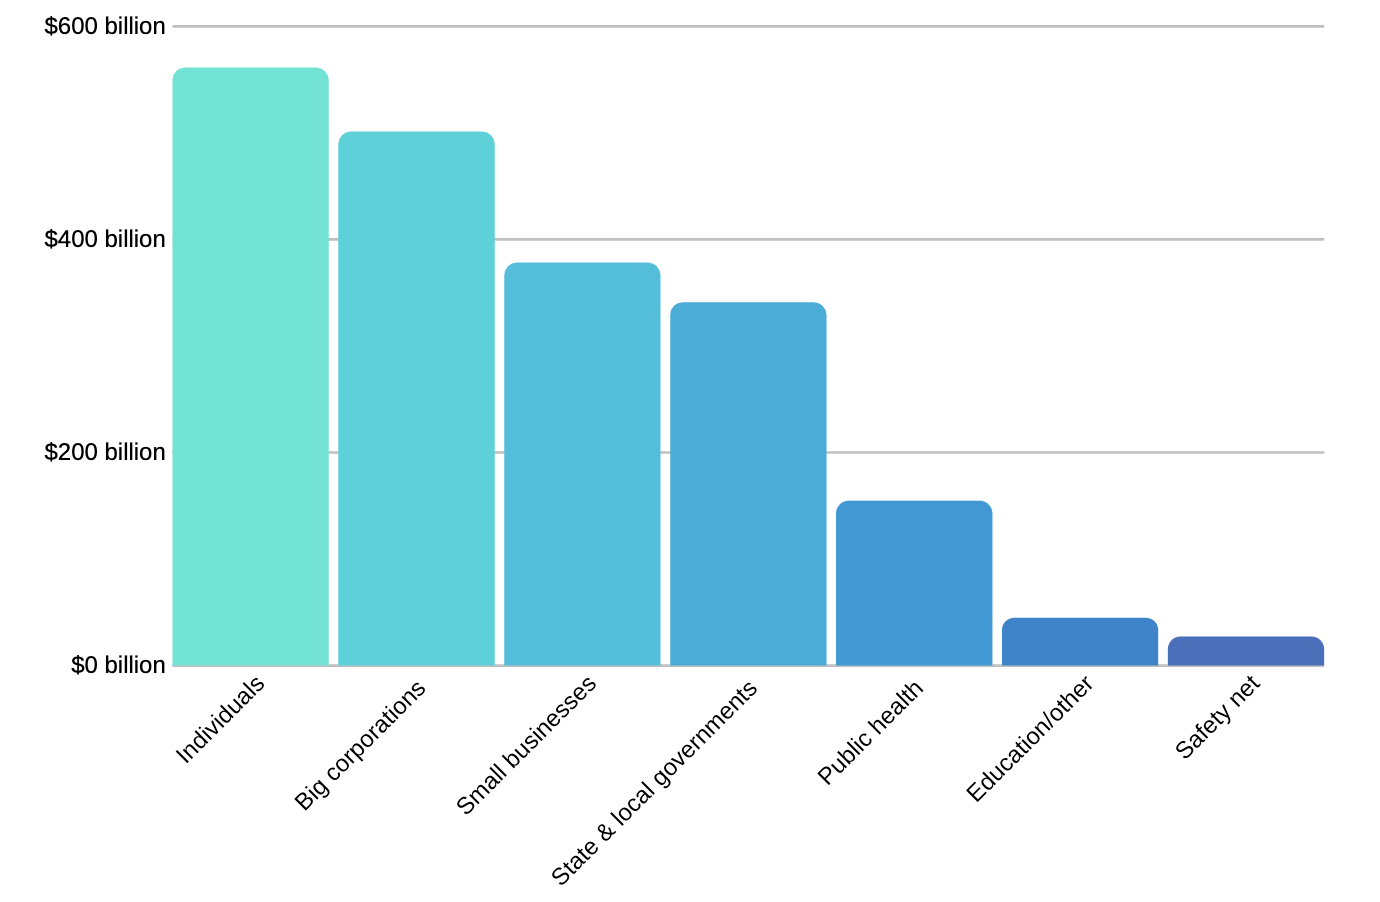 Graph of the CARES Act funds broken down by category